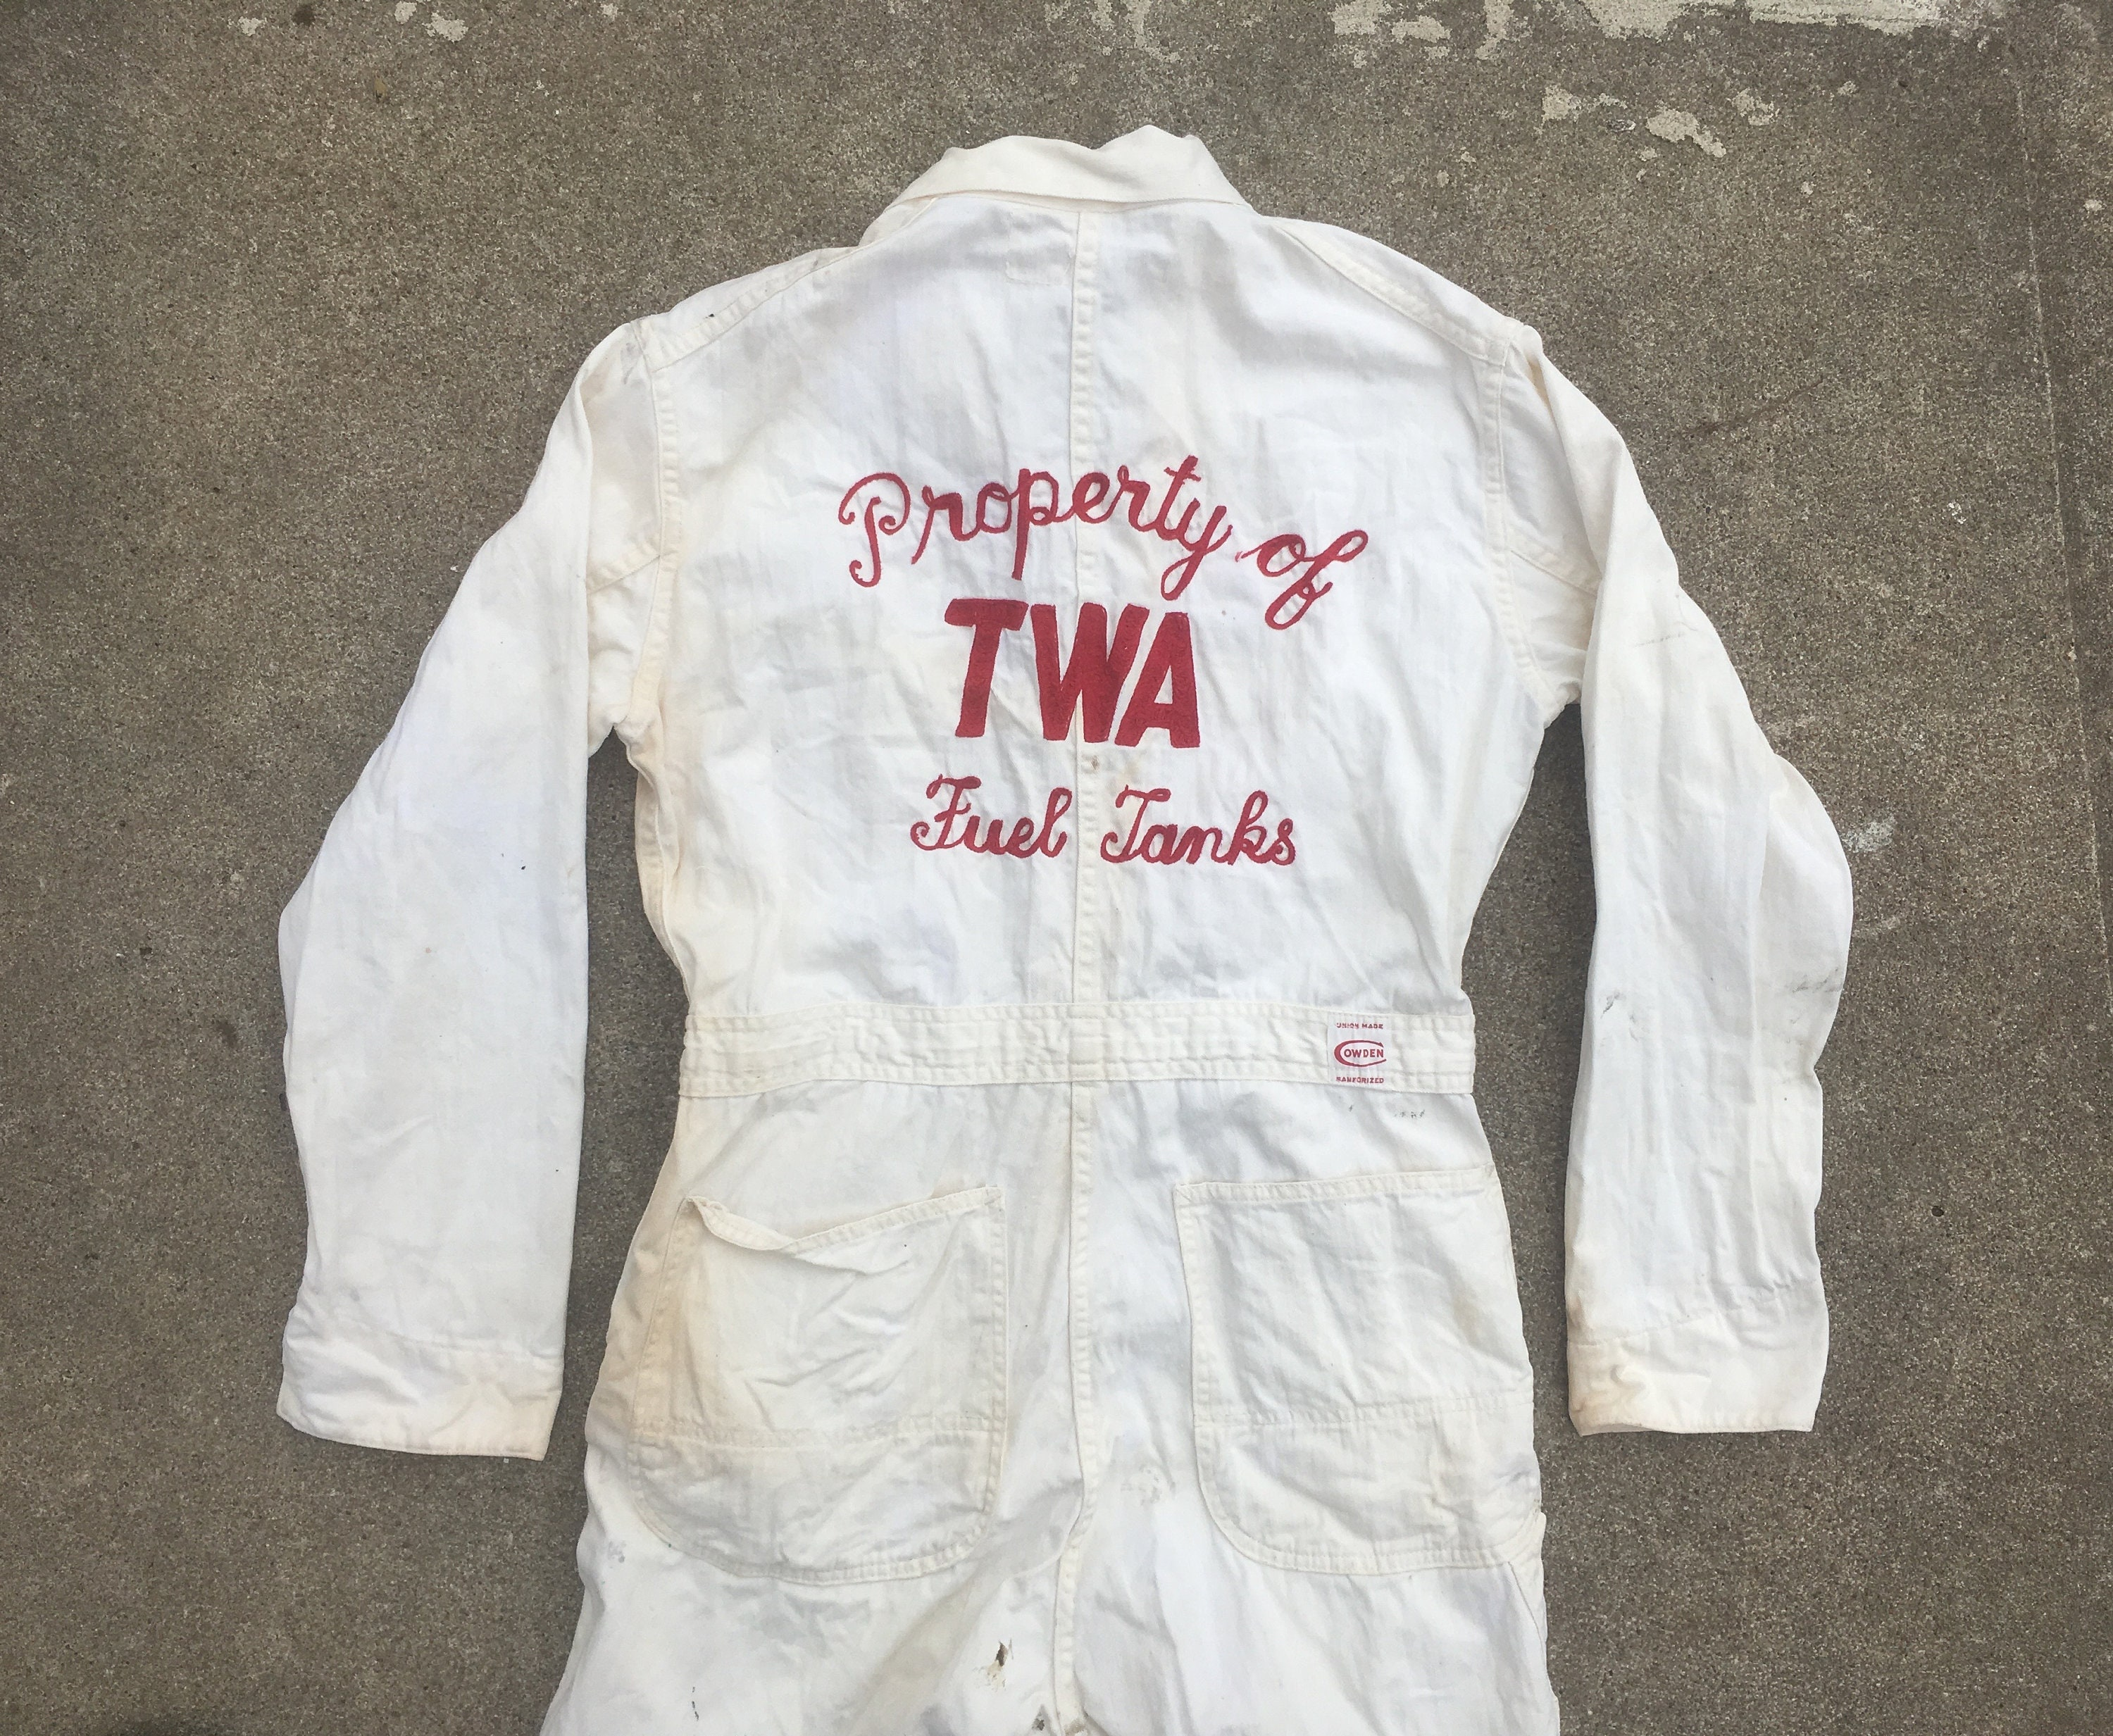 1940s Mens Ties | Wide Ties & Painted Ties Vintage 1940S 1950S Cowden Twa Sanforized Hbt White Cotton Chain Stitch Work Coveralls Overalls 2 33x31 Trans World Airways Advertising $66.50 AT vintagedancer.com